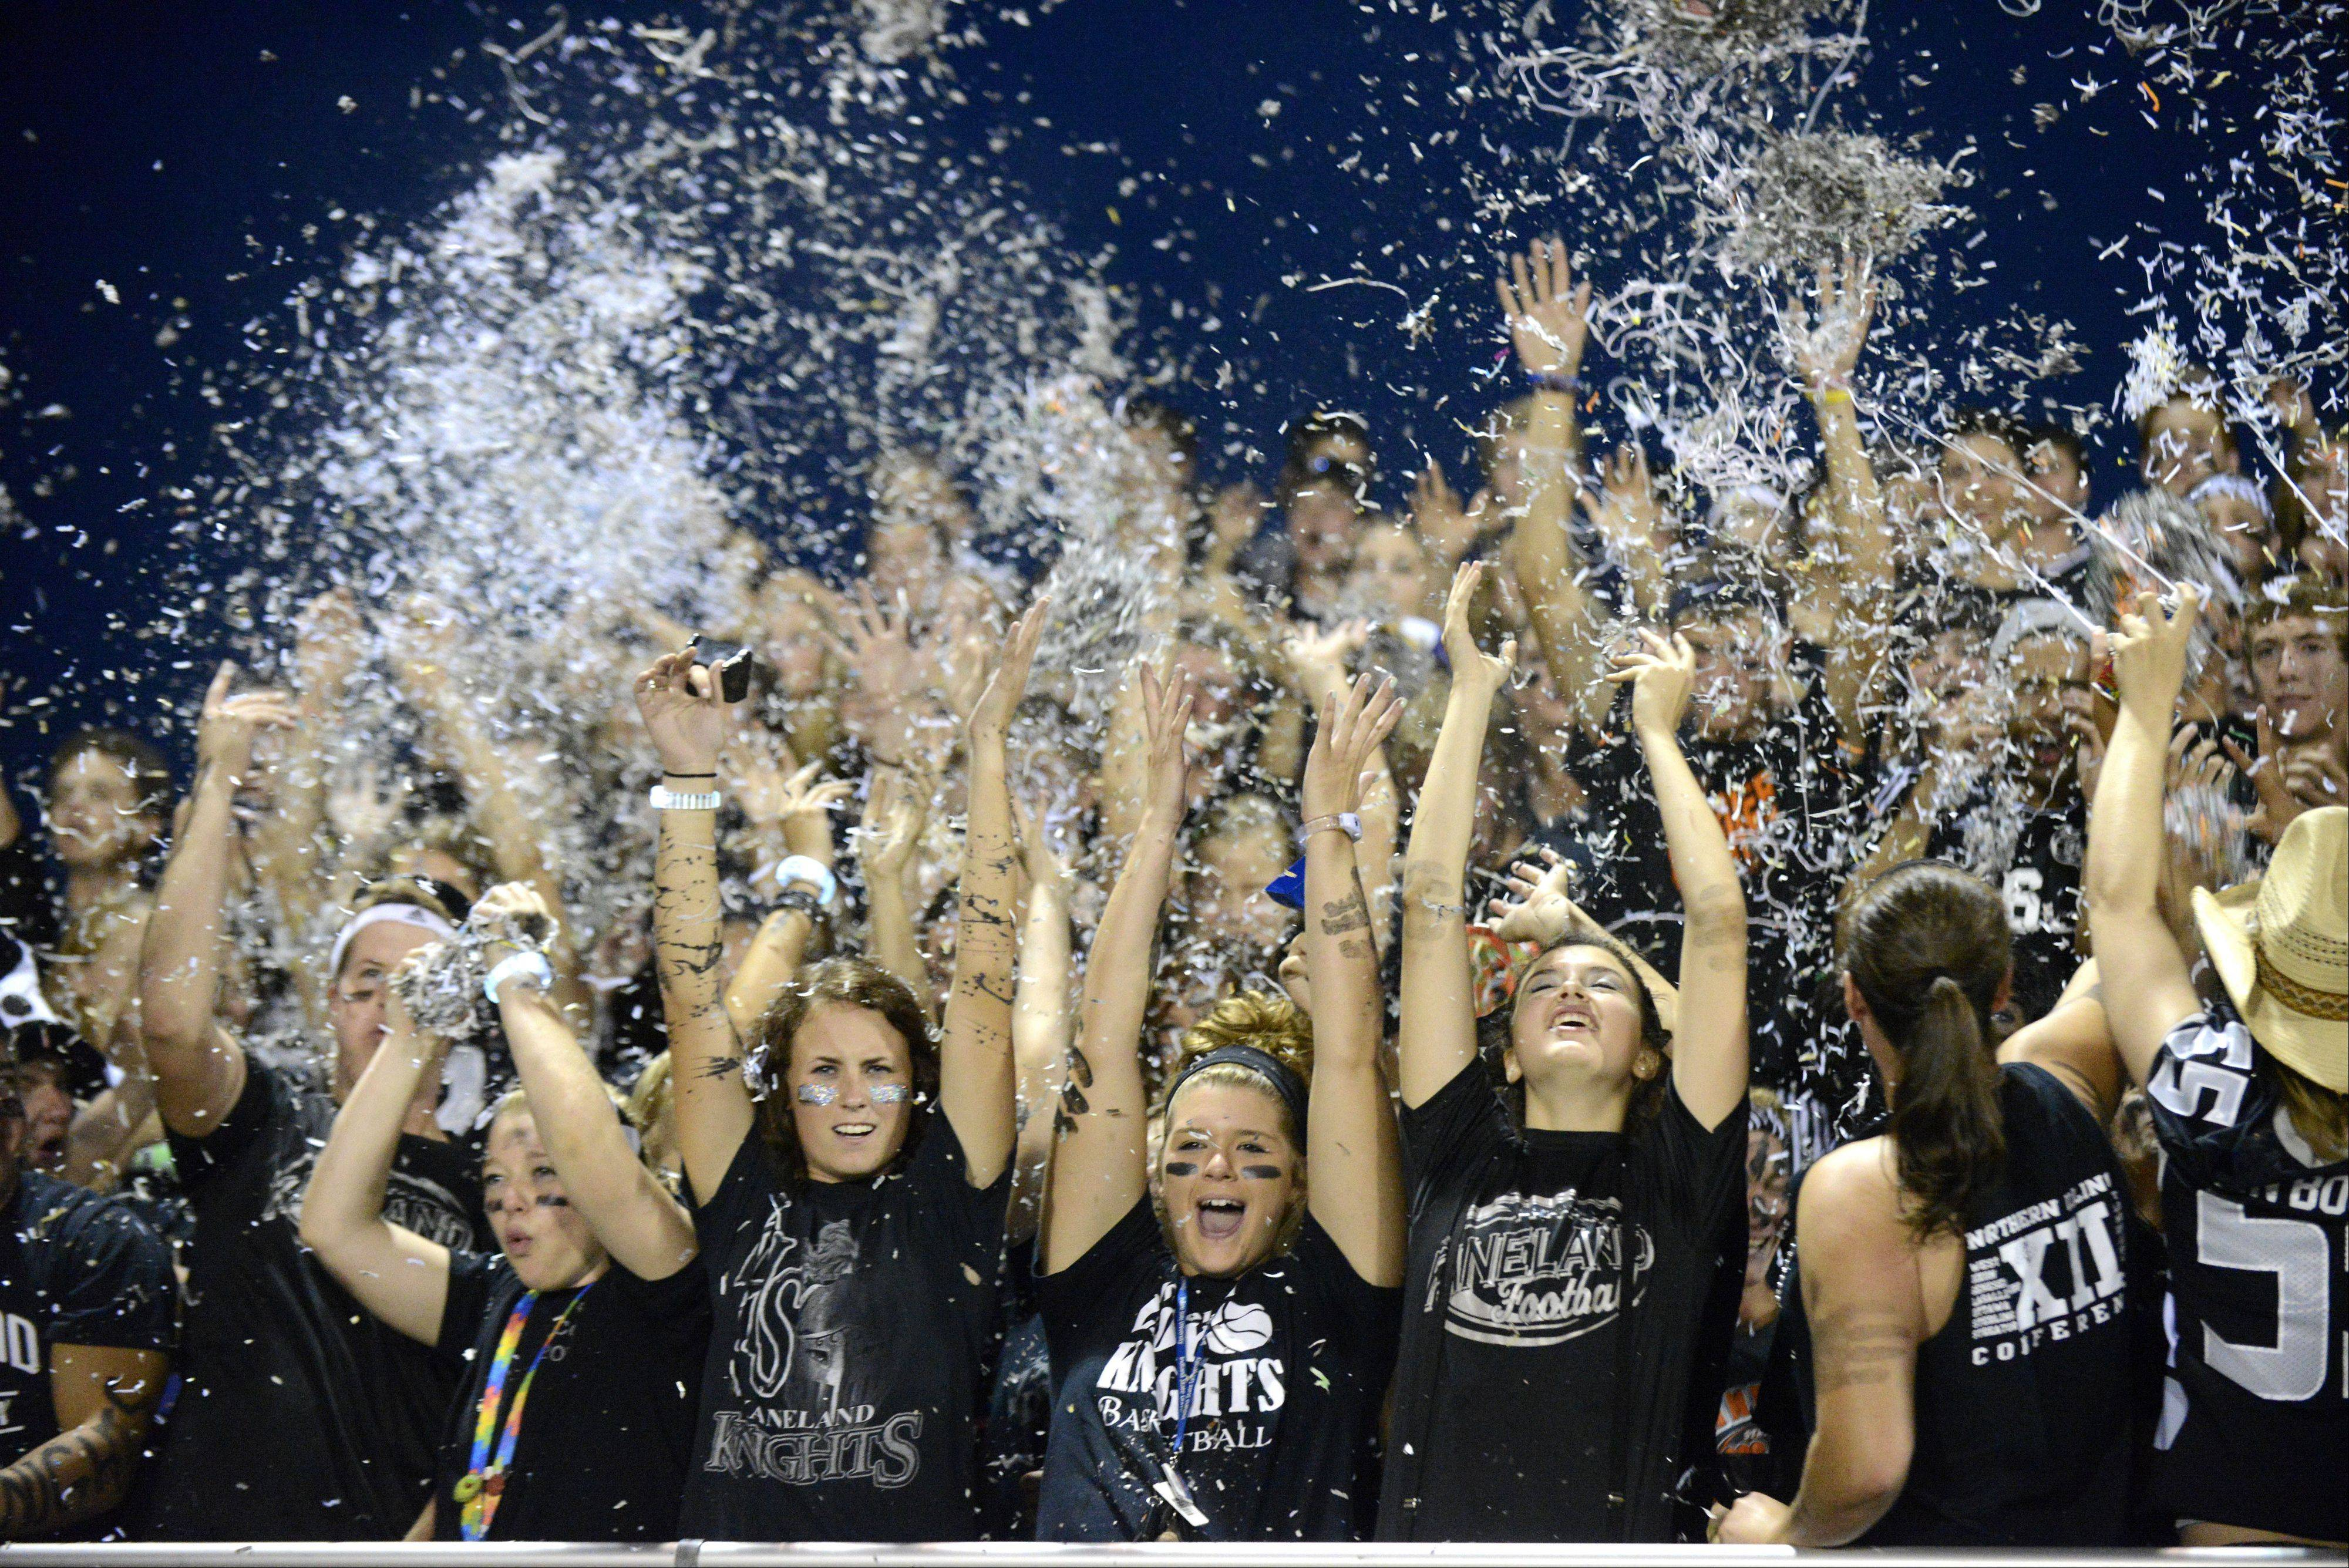 Allison Miller, 17, of Sugar Grove, Brittany Kemp, 17, of Elburn and Brin Will, 17, of Sugar Grove celebrate in the front row of the student section.